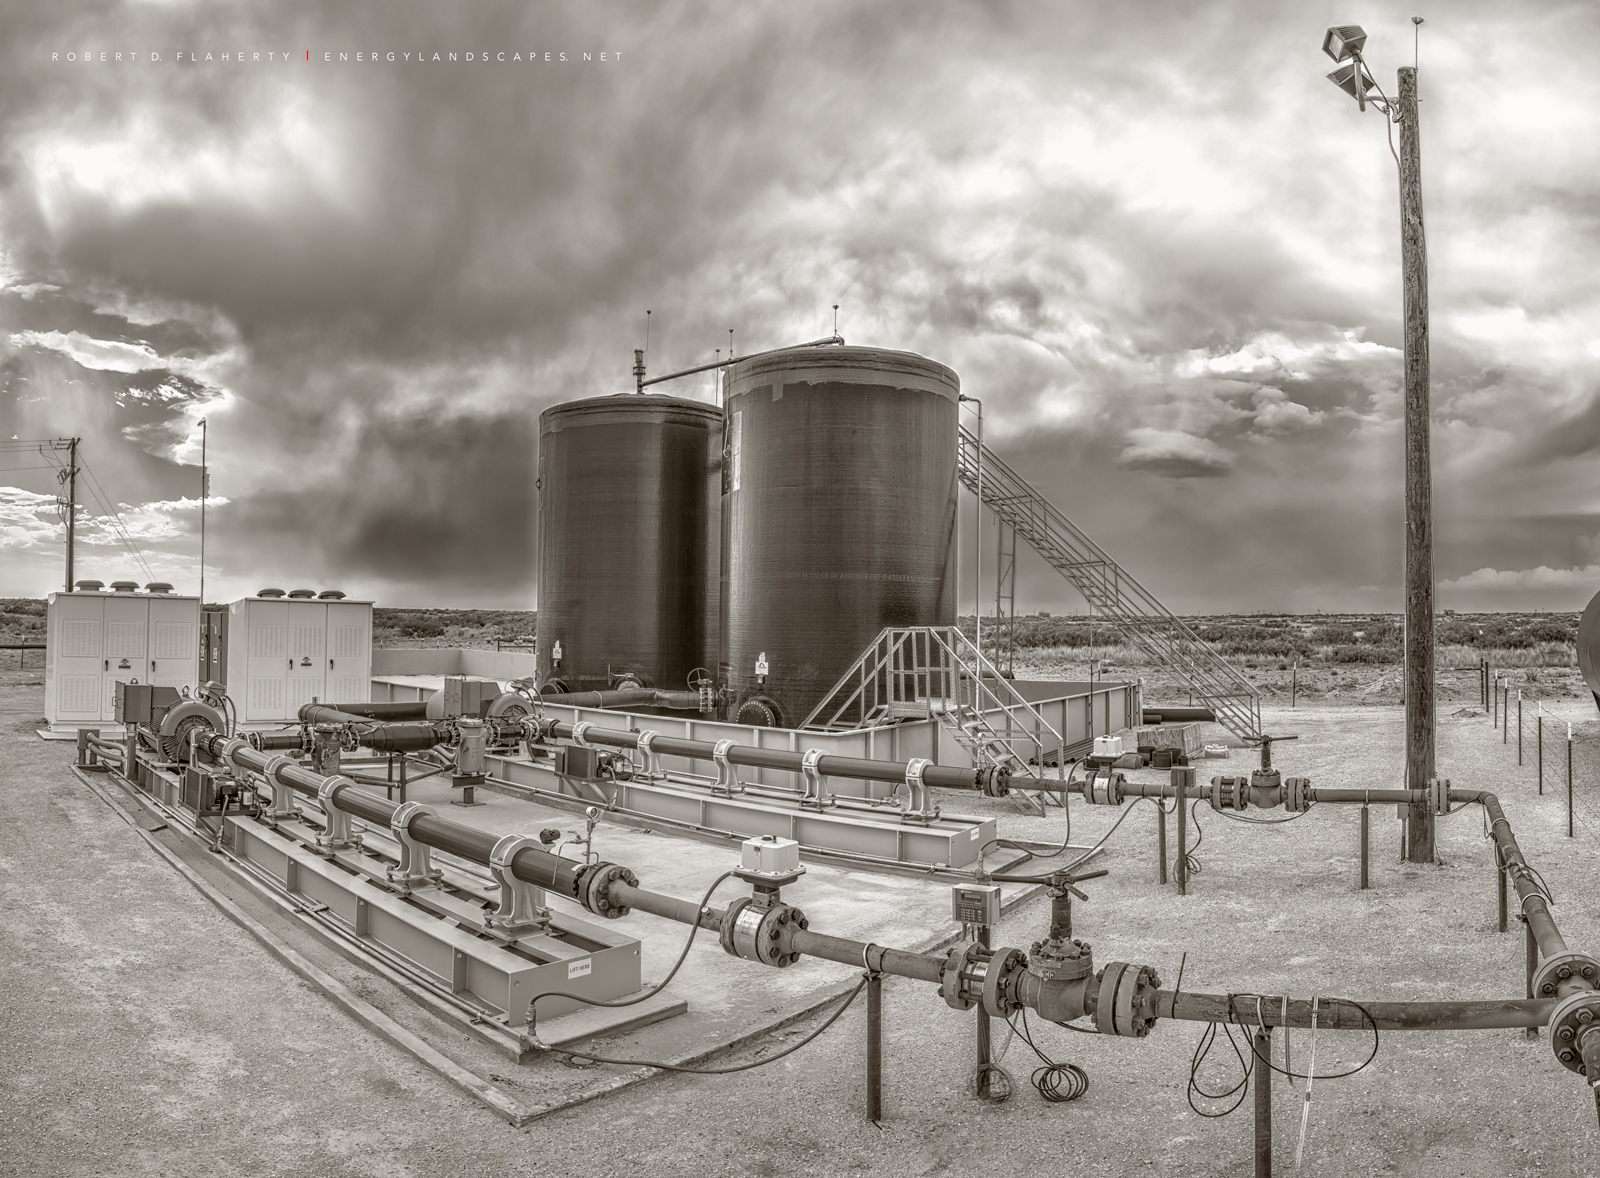 SWD Injection, SWD, Delaware Basin, New Mexico, sepia, black & white photography, fine art photography, fall, saltwater disposal unit, saltwater disposal facility , photo